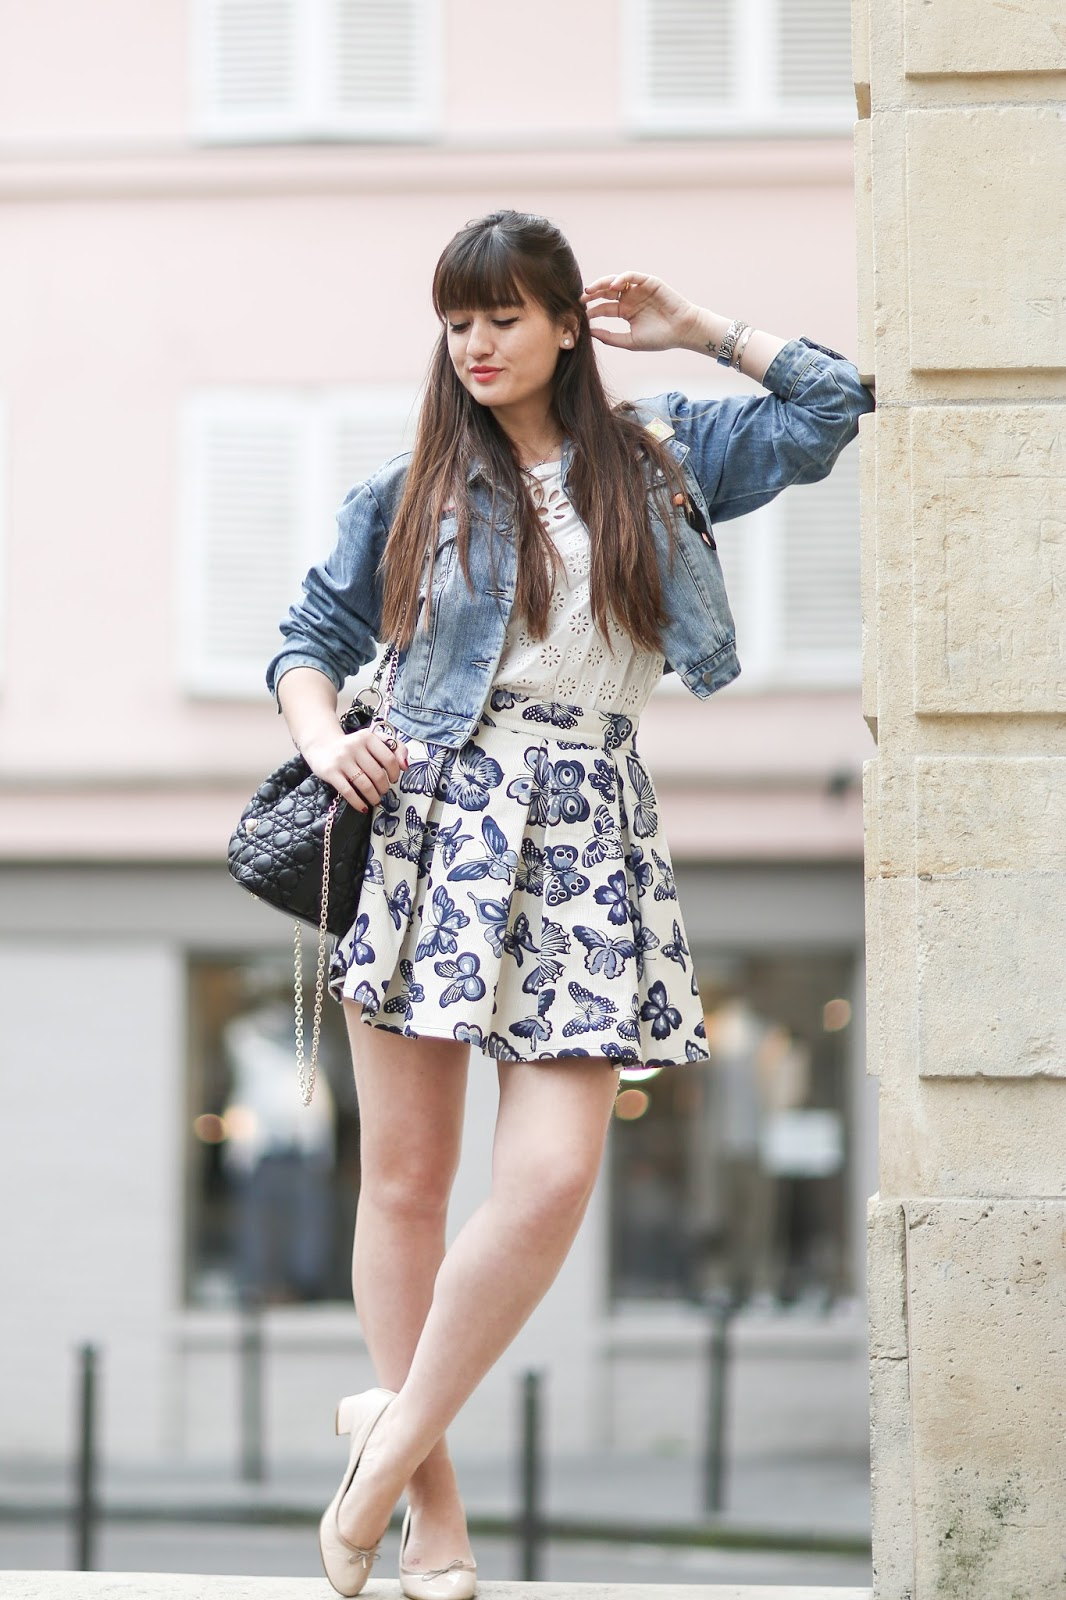 parisian fashion blogger, look, style, meetmeinparee, fashion, chic parisian style, manoush, chic wish